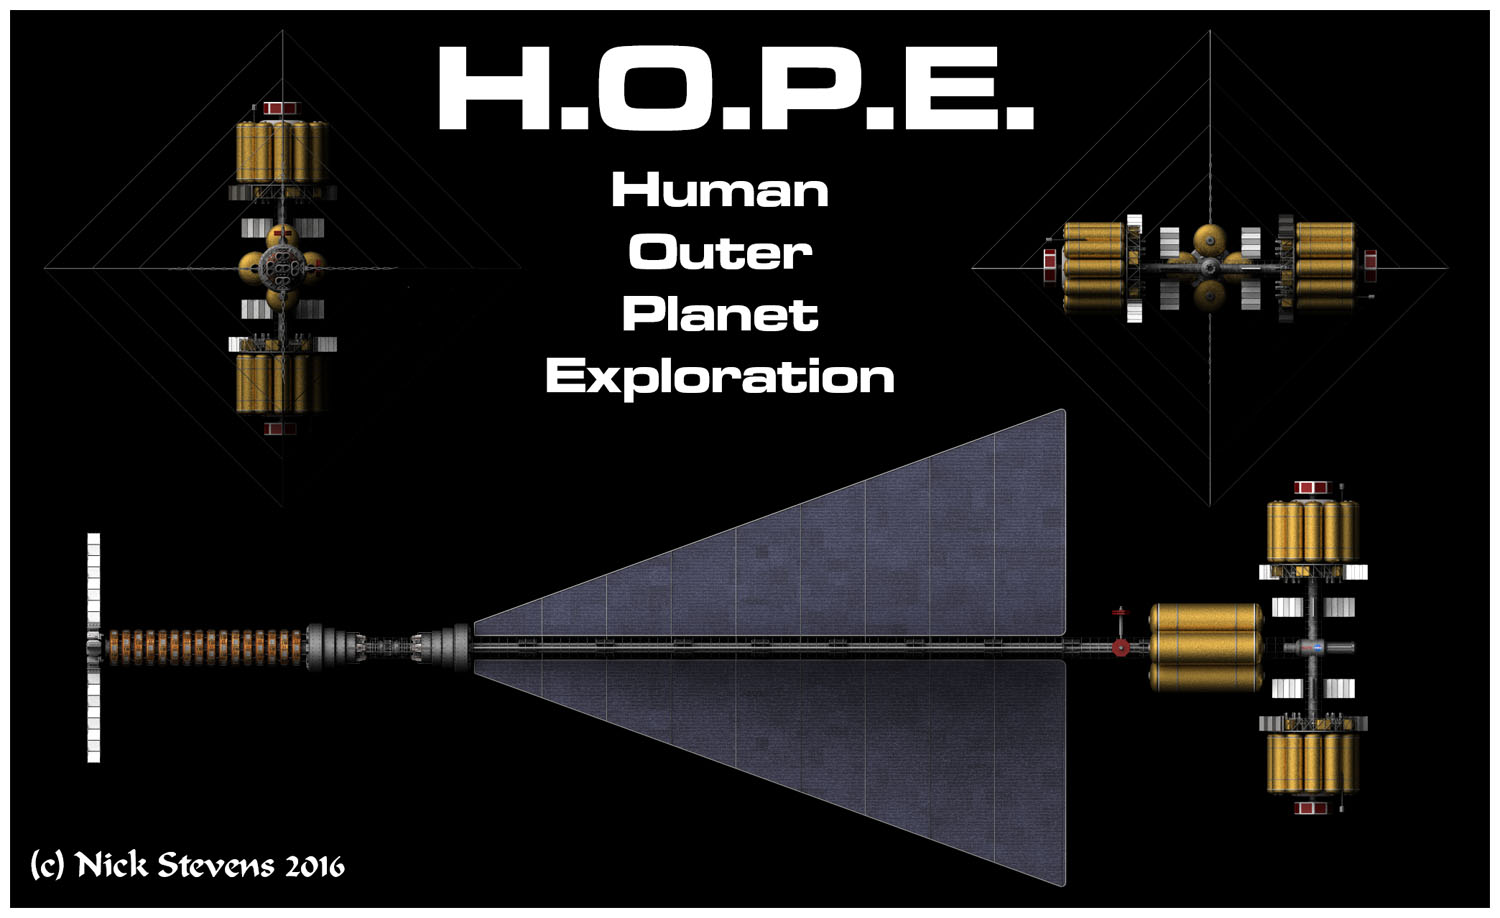 hope-vasimr-orthosetx